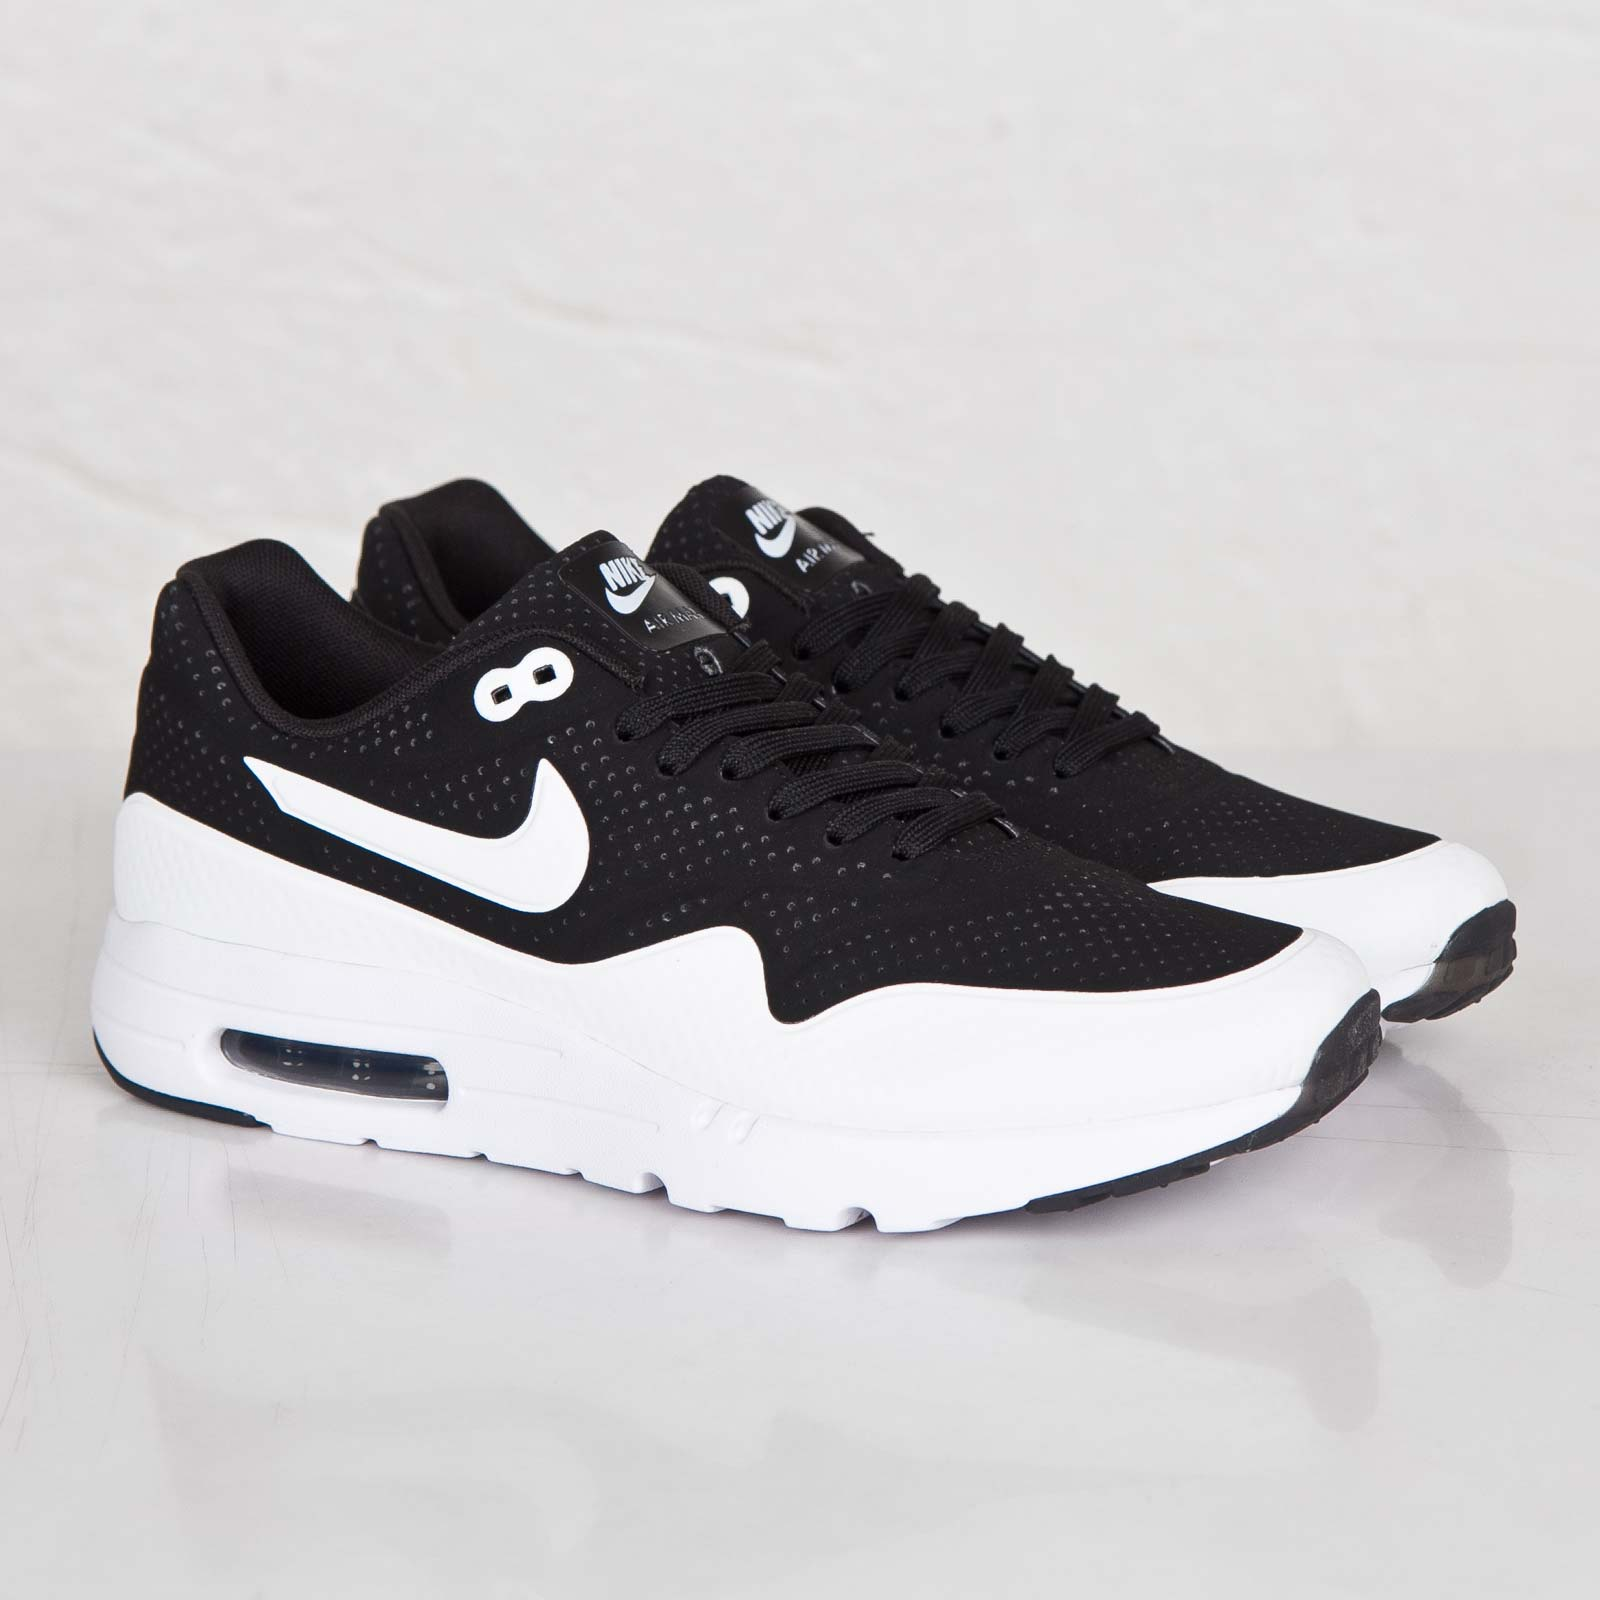 new product dcc49 e795f Nike Air Max 1 Ultra Moire